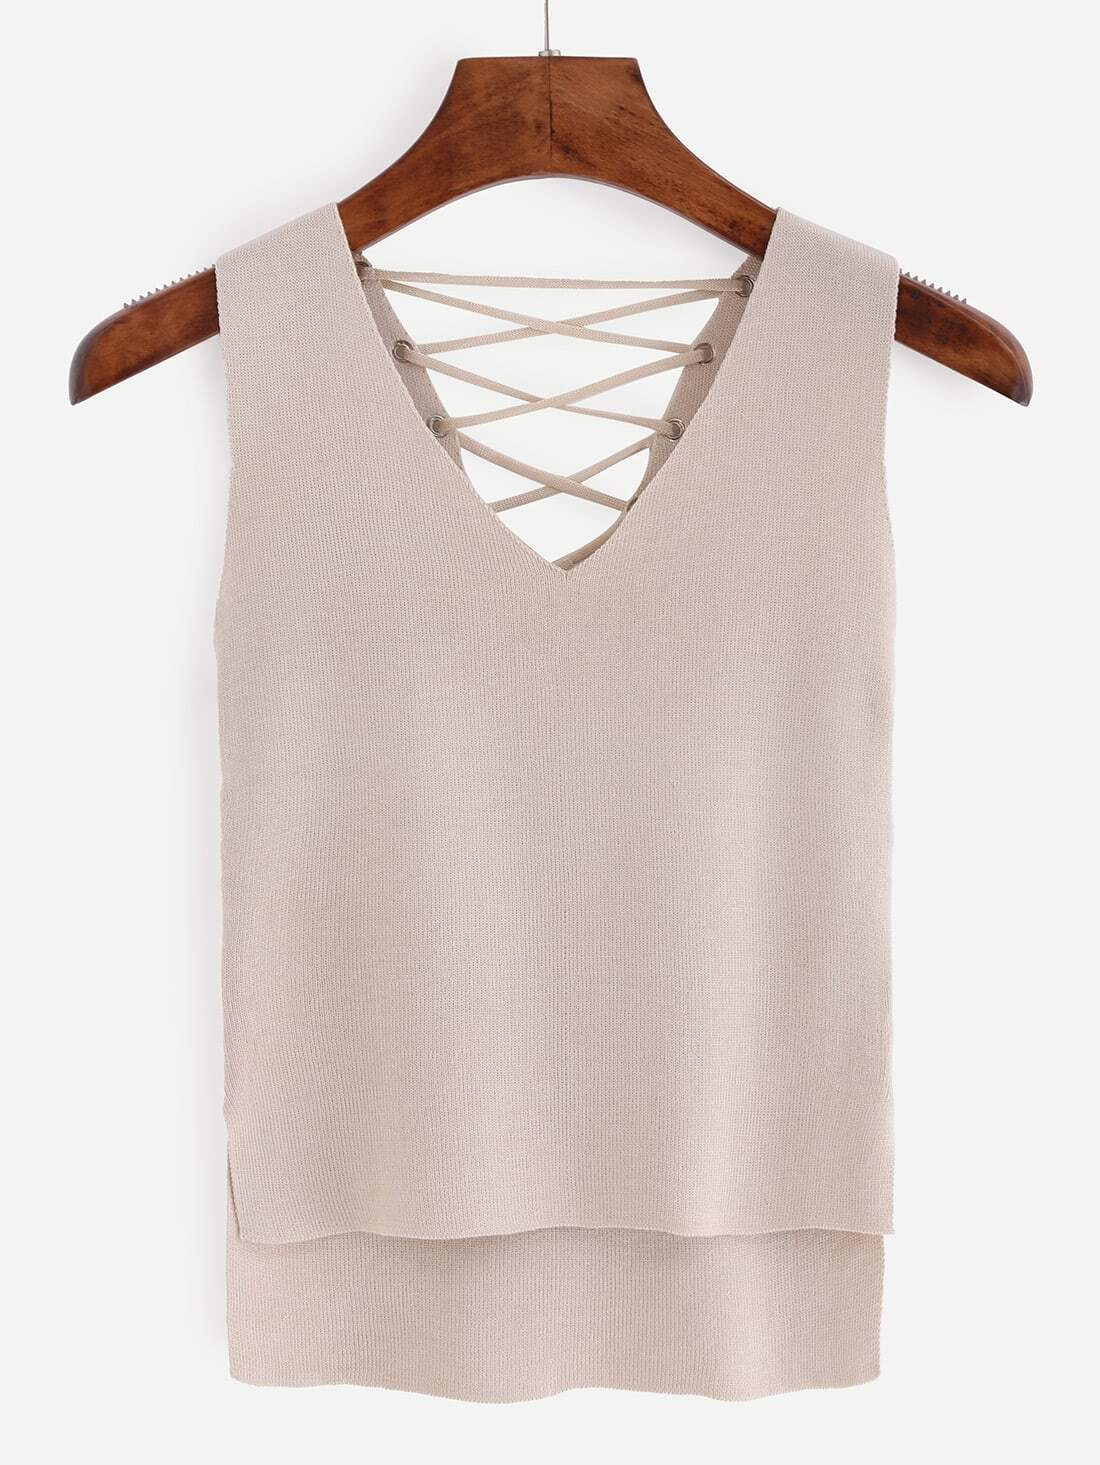 Buy Eyelet Lace-Up Knitted High-Low Tank Top - Apricot